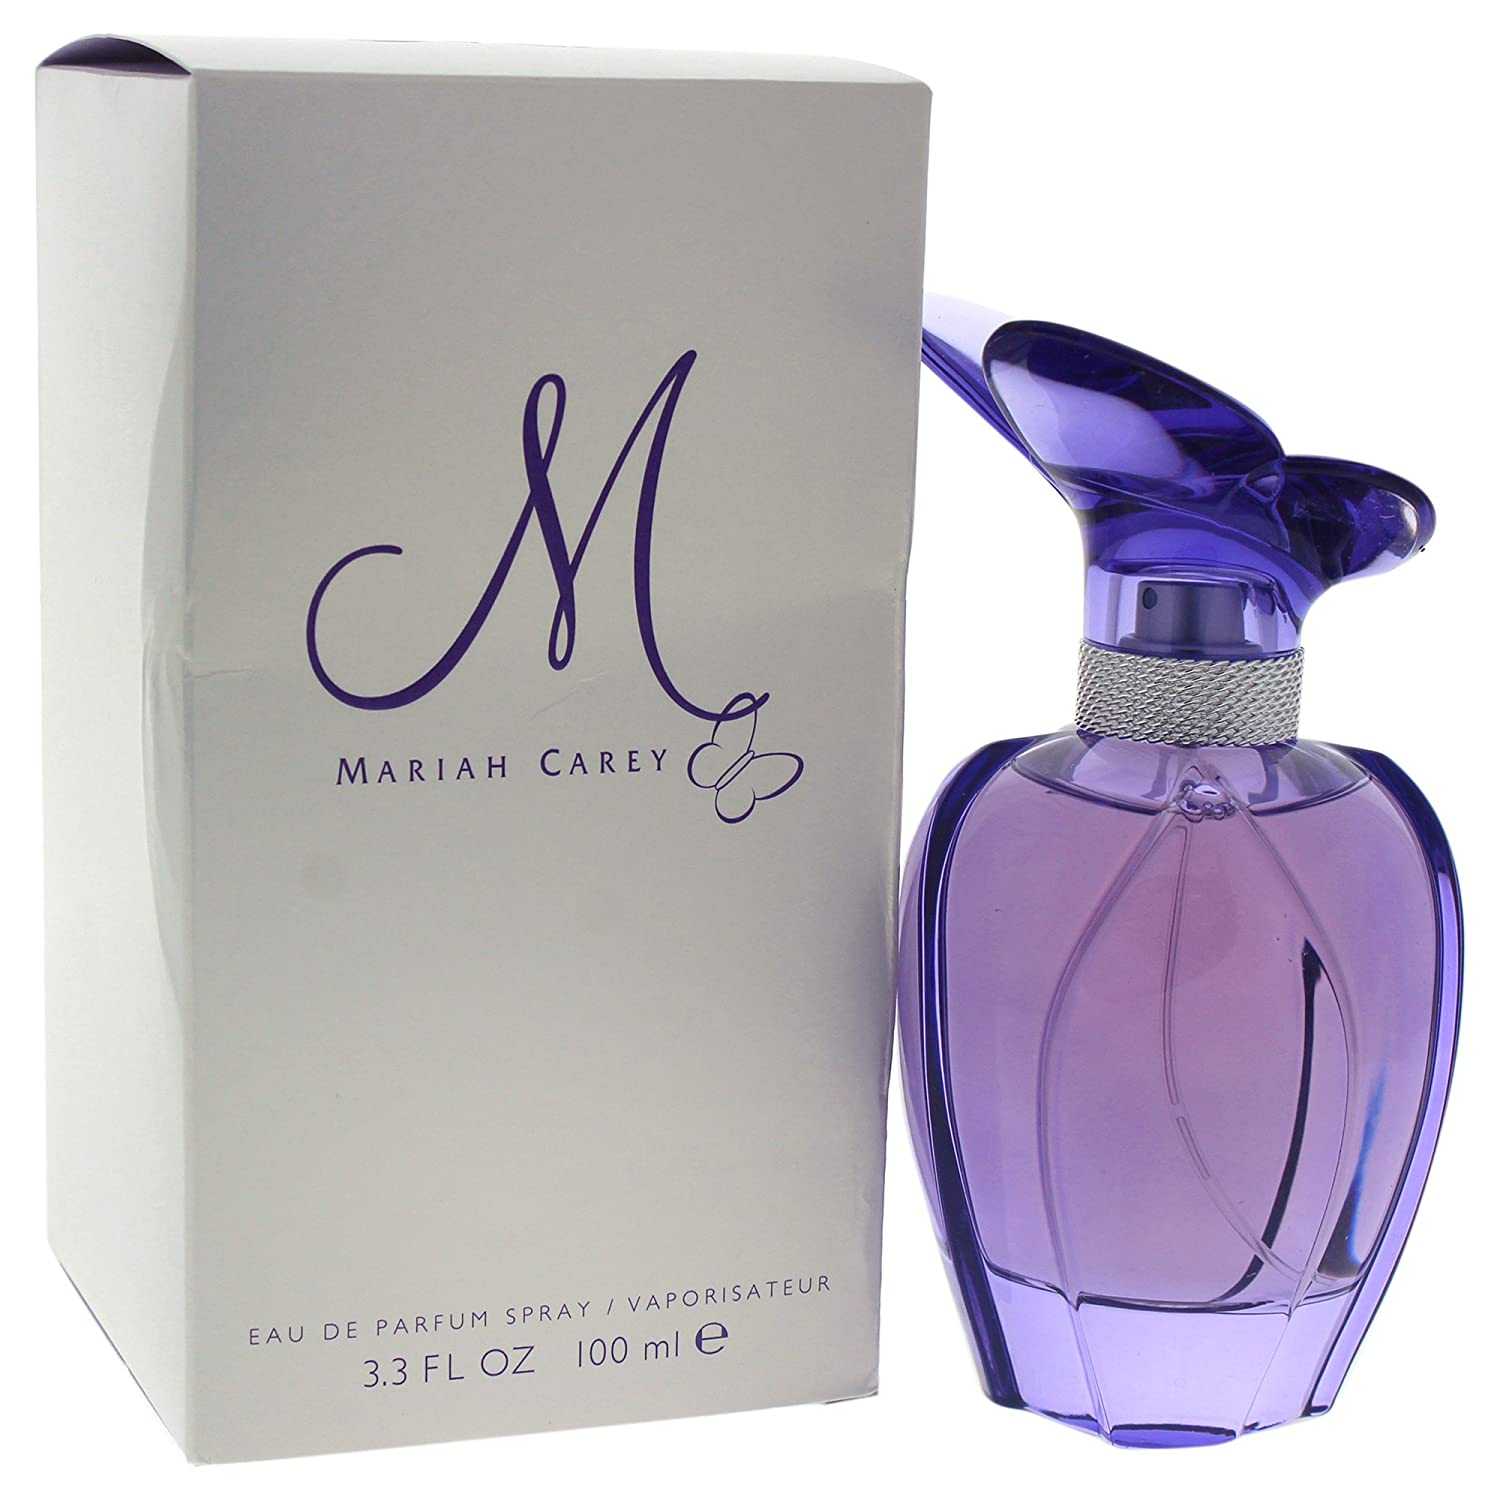 M by Mariah Carey Eau de Parfum Spray 50ml 154661